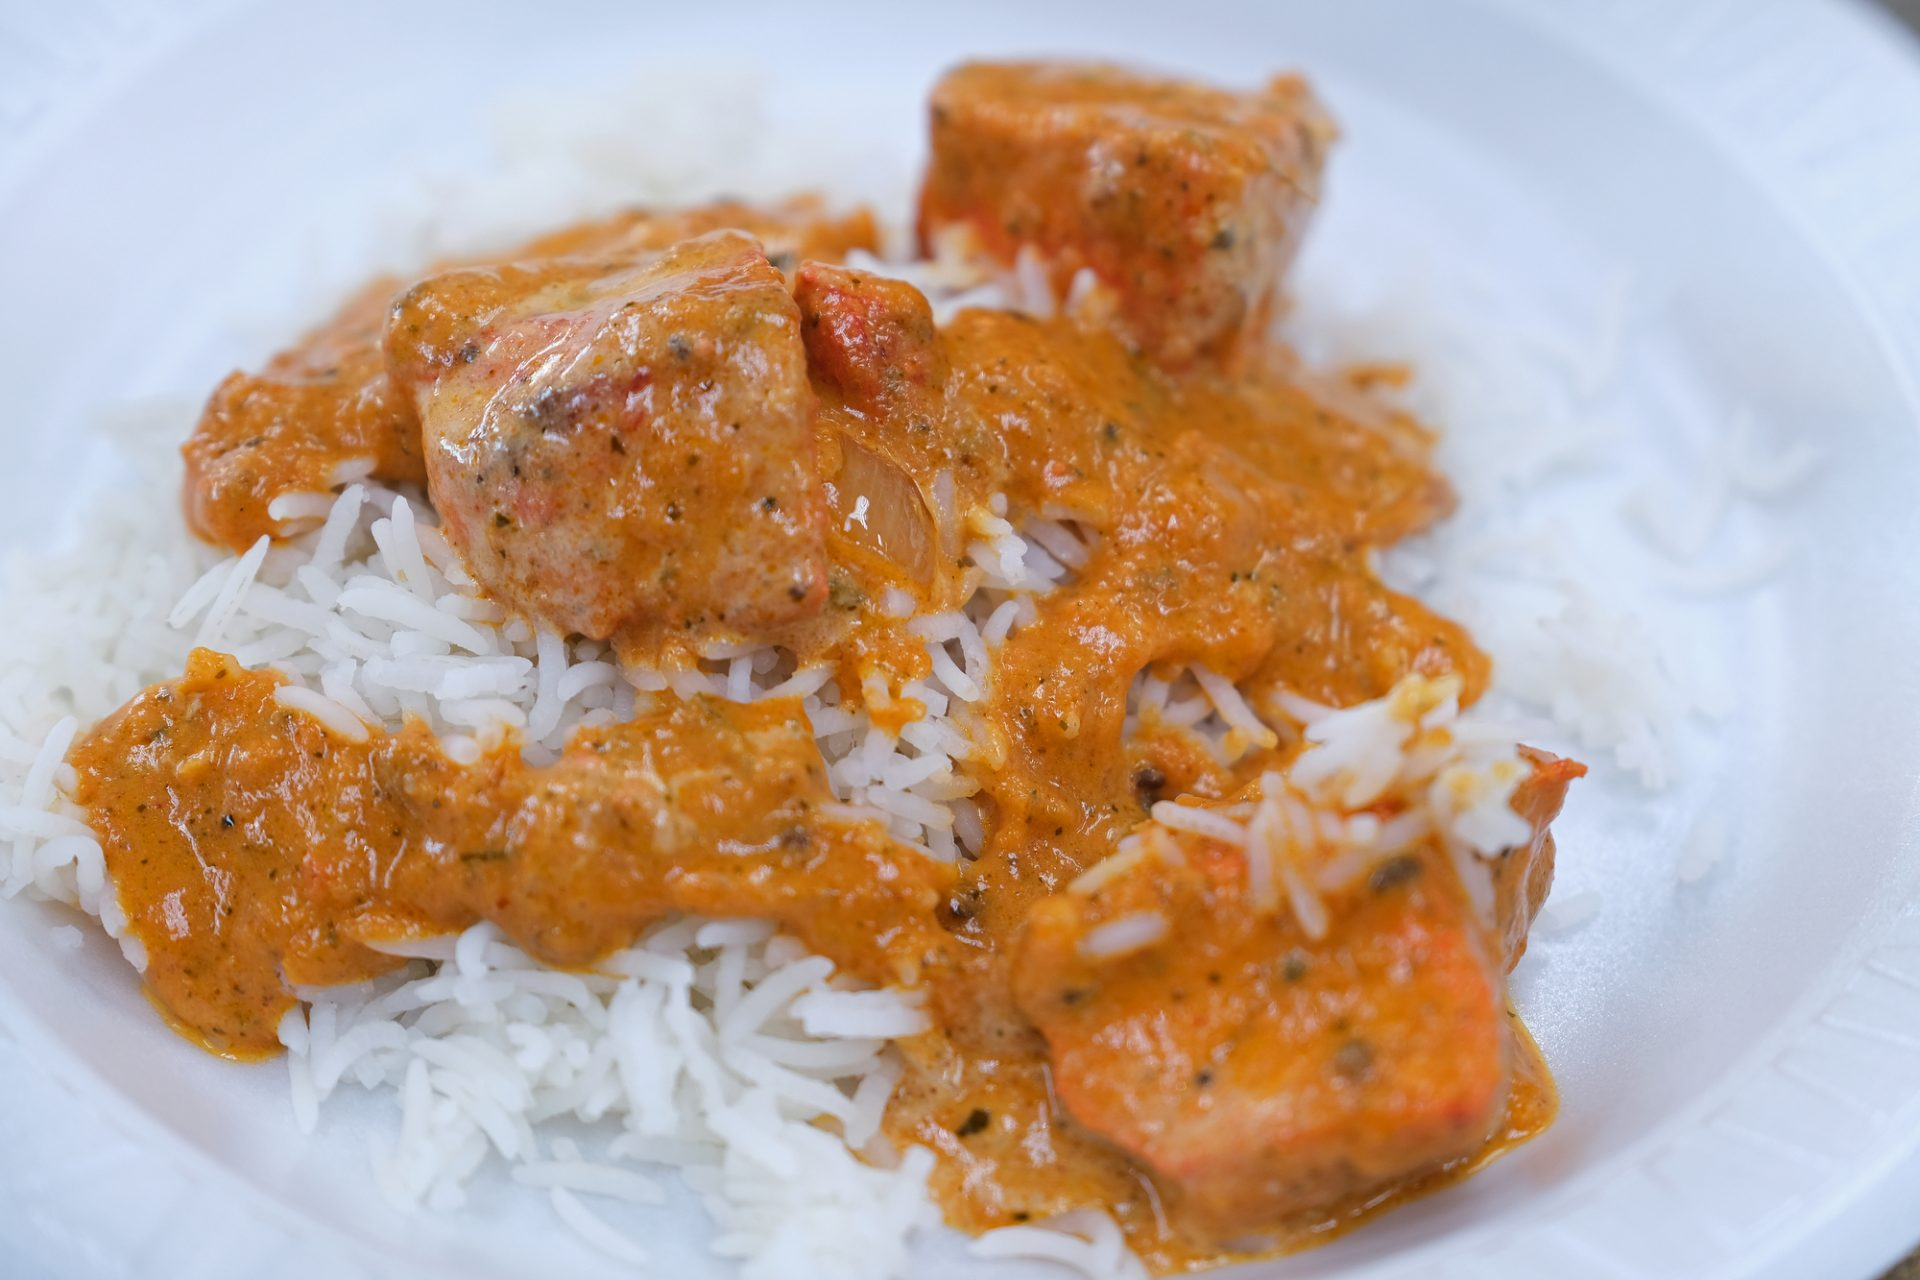 Chicken Tikka Masala is on the menu at Eat Spice on Oct. 24, 2019, in the truck stop on route 534 off I-80 in White Haven, Pennsylvania. The restaurant caters to members of the Sikh community and as there is a large population of truckers from that community, the Indian Dhaba and Mediterranean dishes become hard to find on the road.